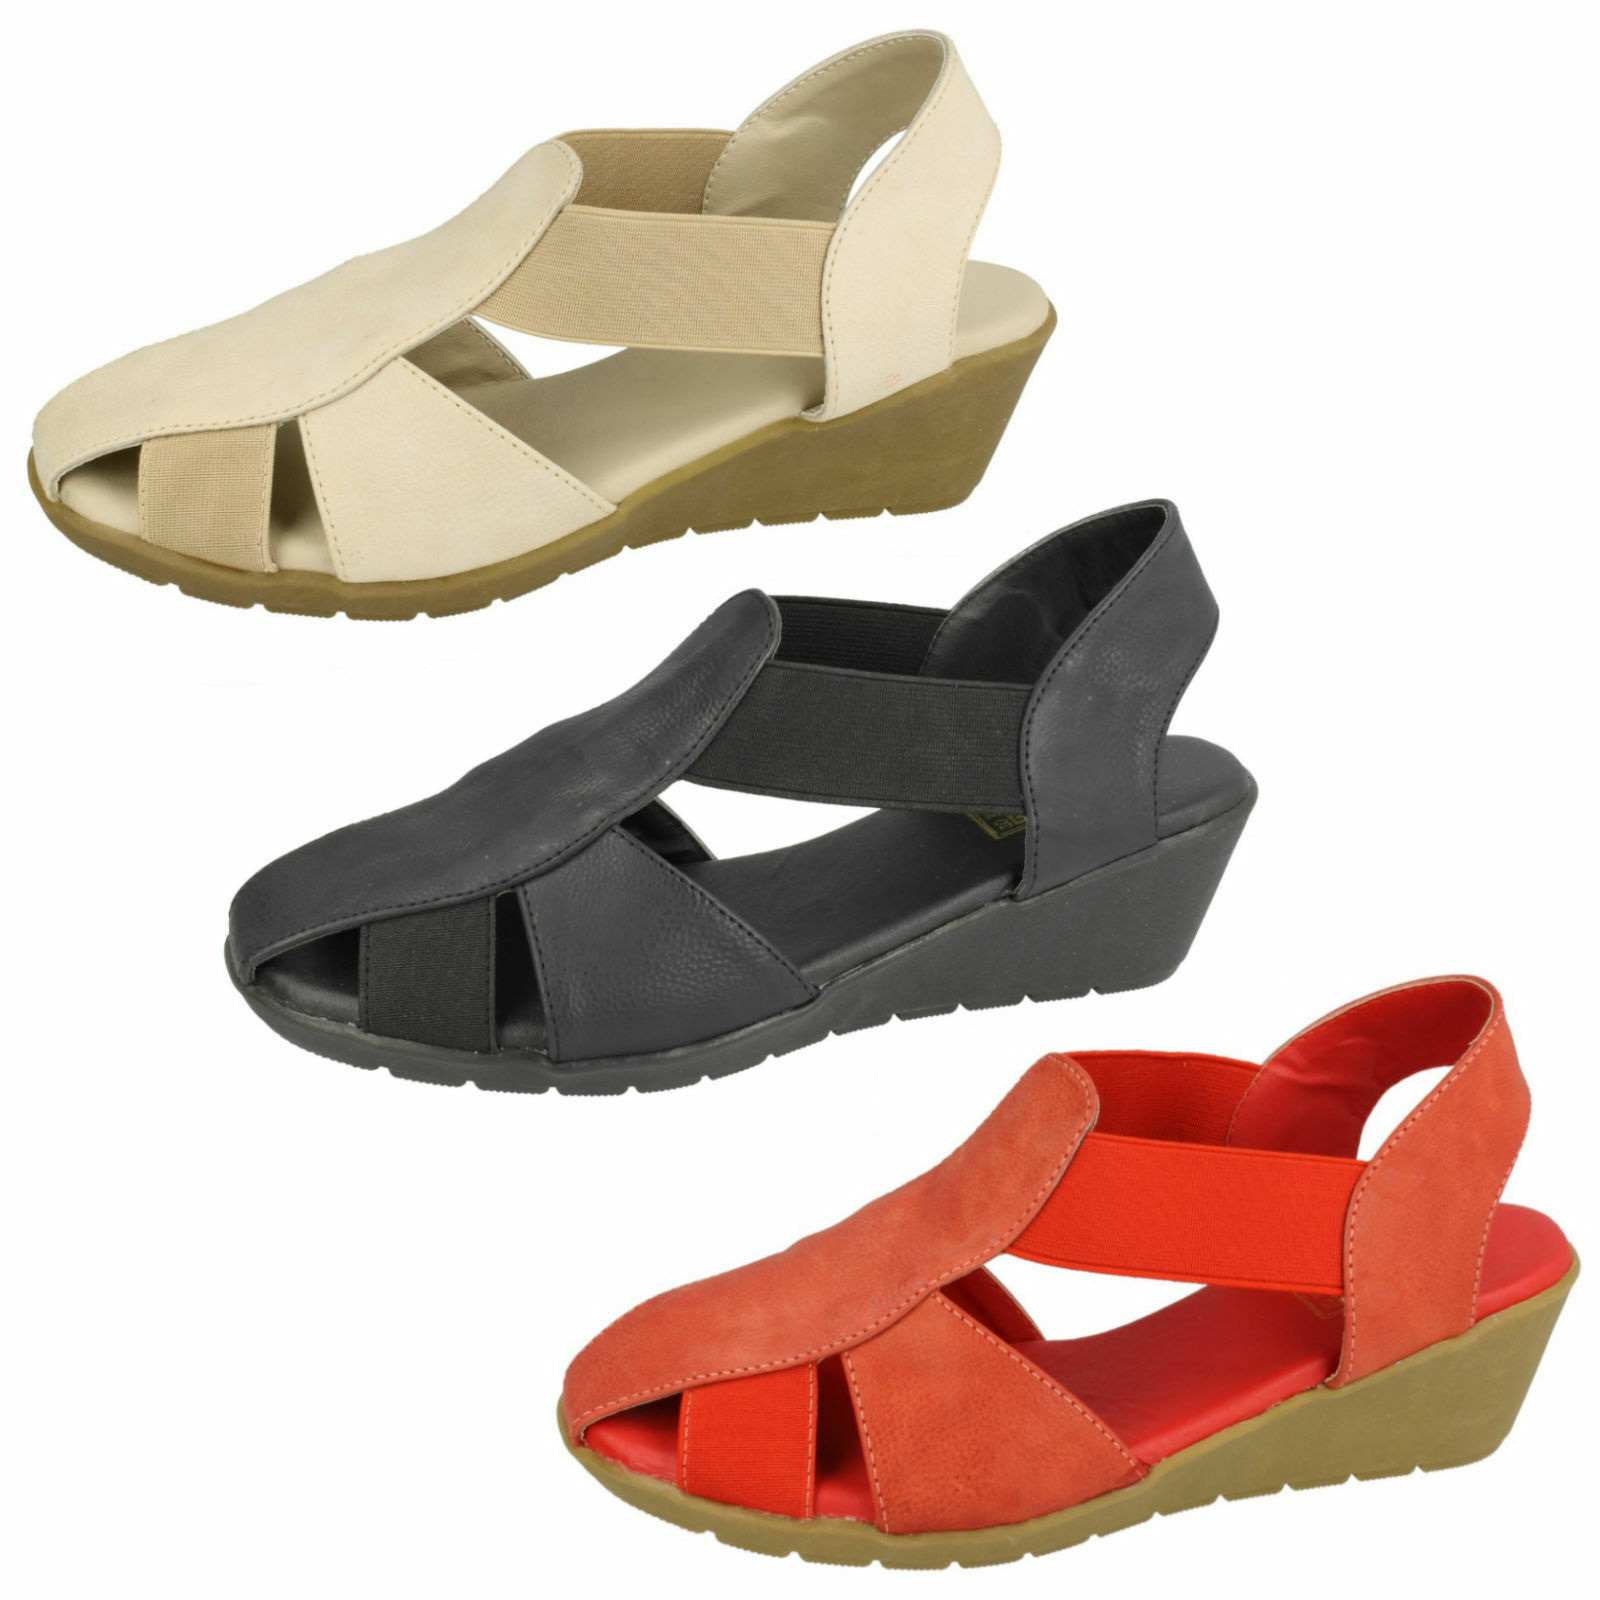 DOWN TO EARTH LADIES TOE F1R0428 IN SLING BACK SANDAL F1R0428 TOE db64dc